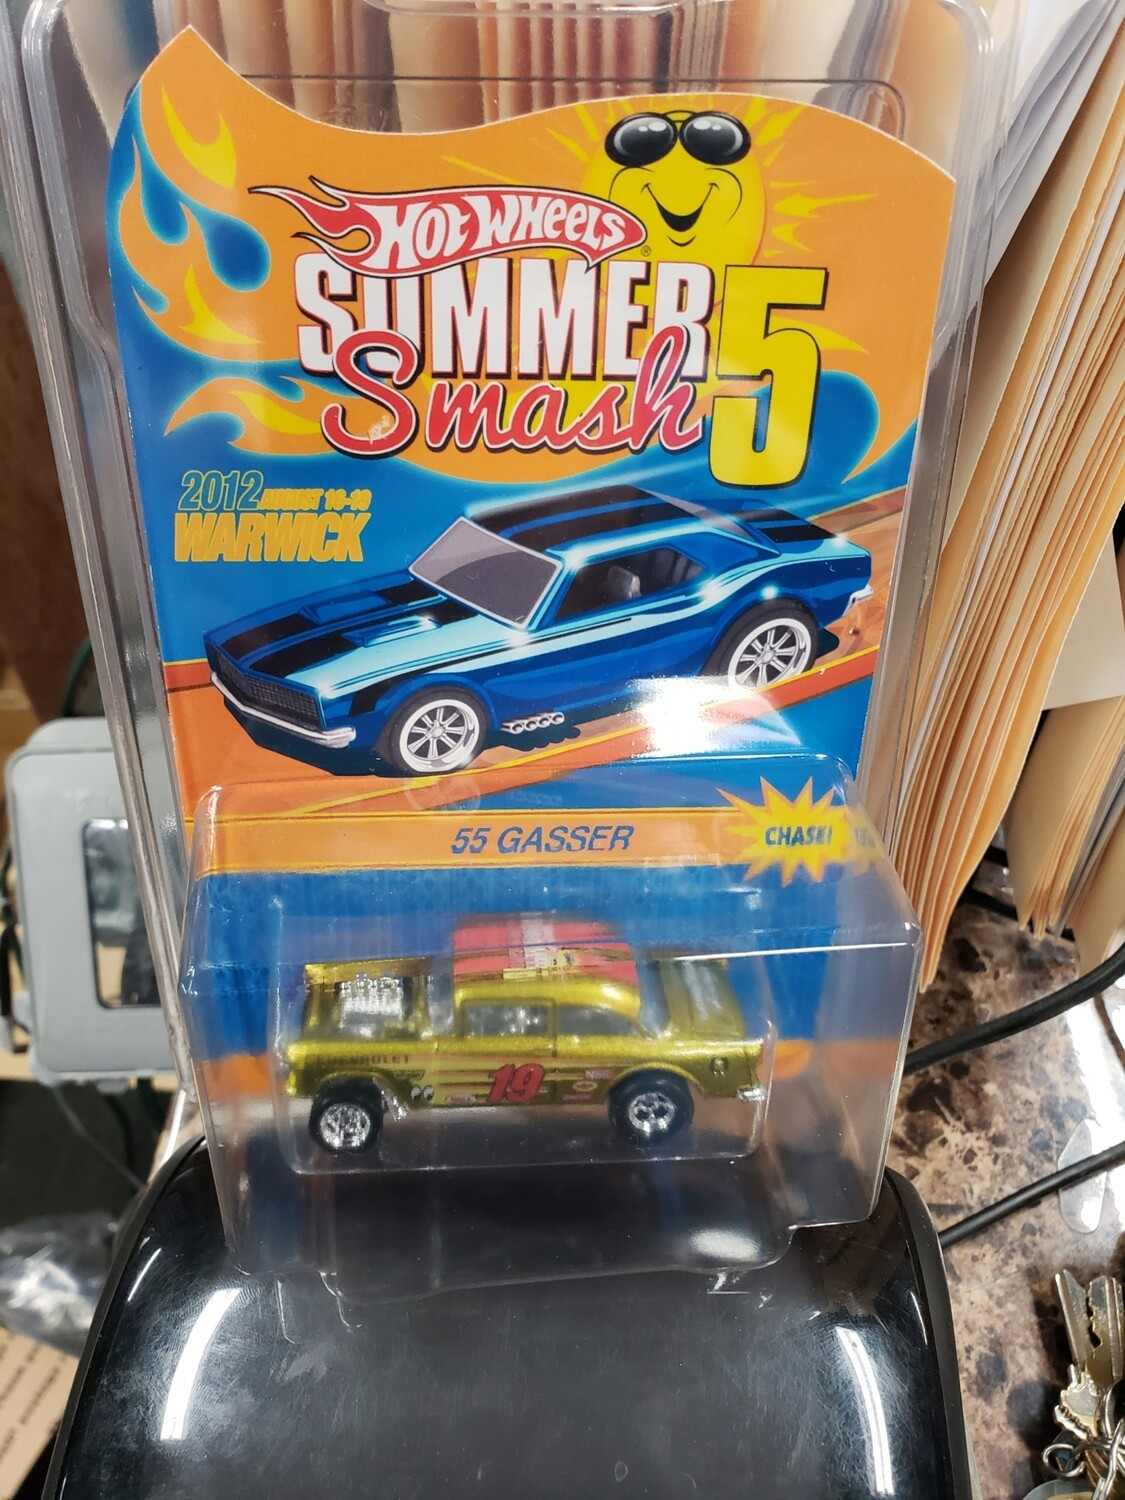 Summer Convention Series 10th Anniversary '55 Gasser - Hot Wheels Summer Smash